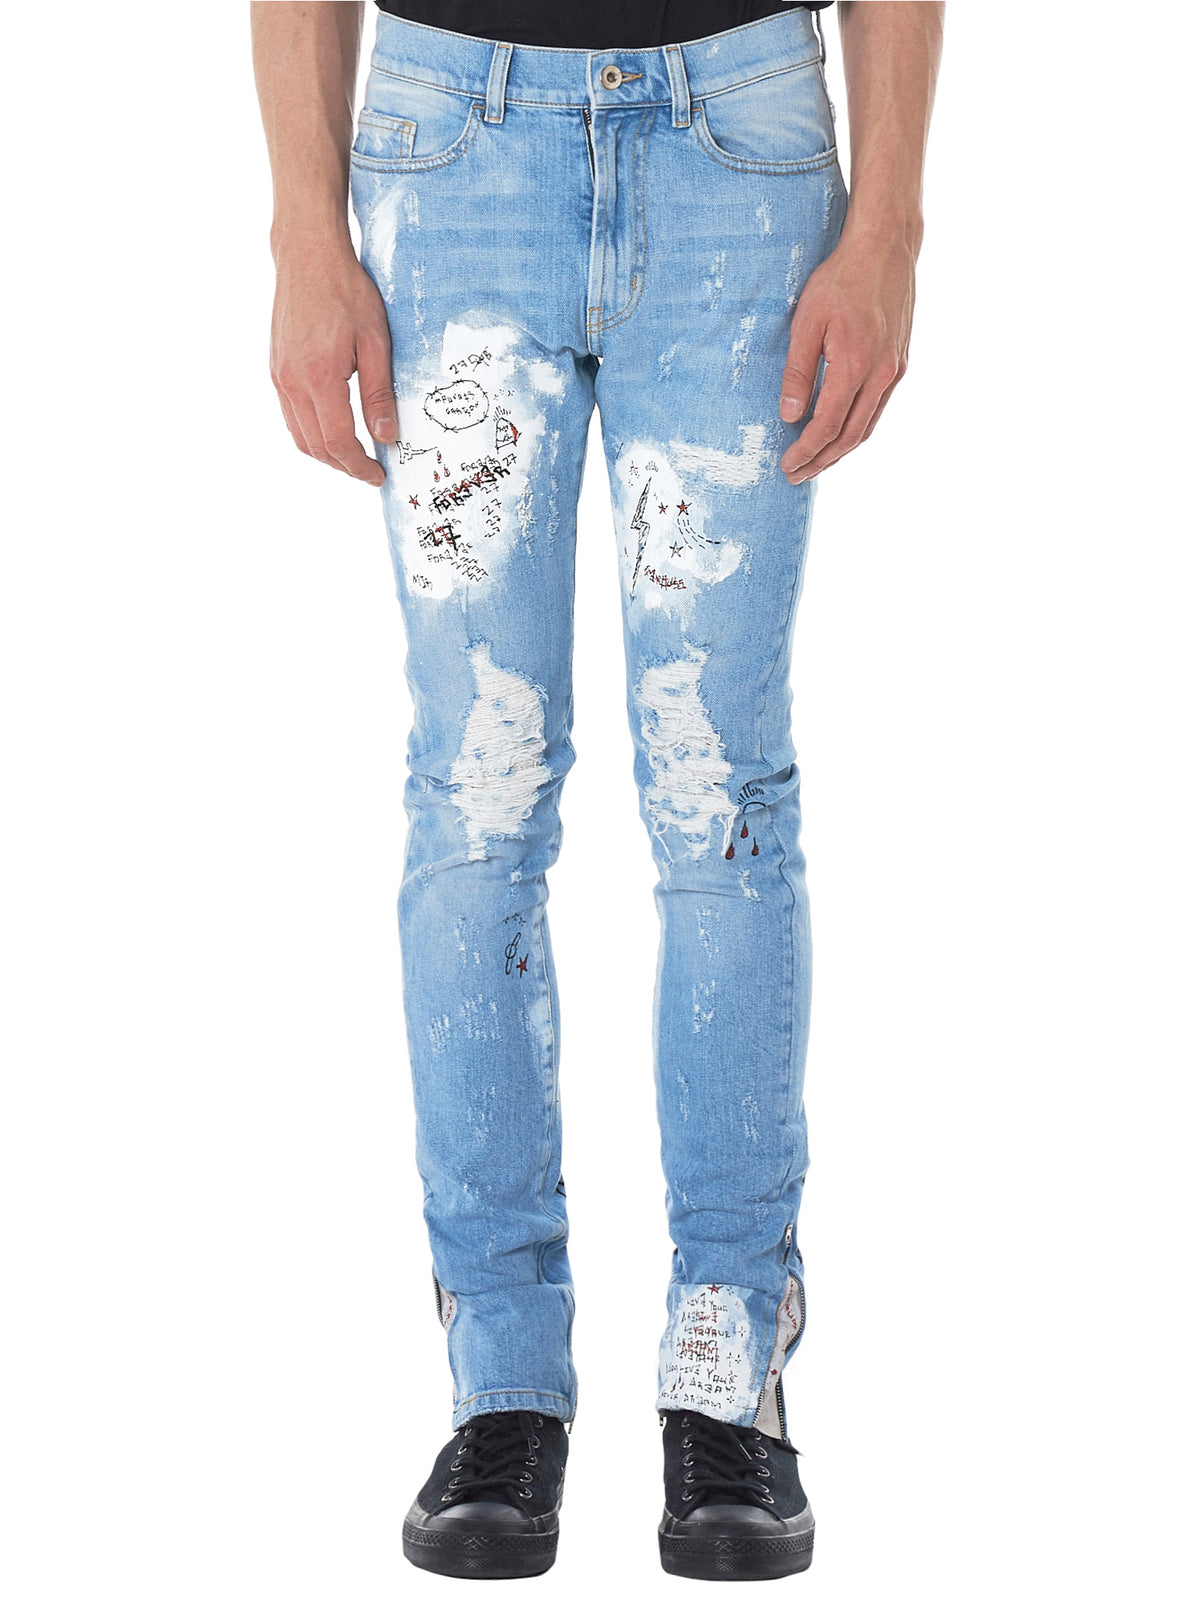 Hand-Painted Distressed Jeans (CRIXNK27-LIGHT-BLUE)